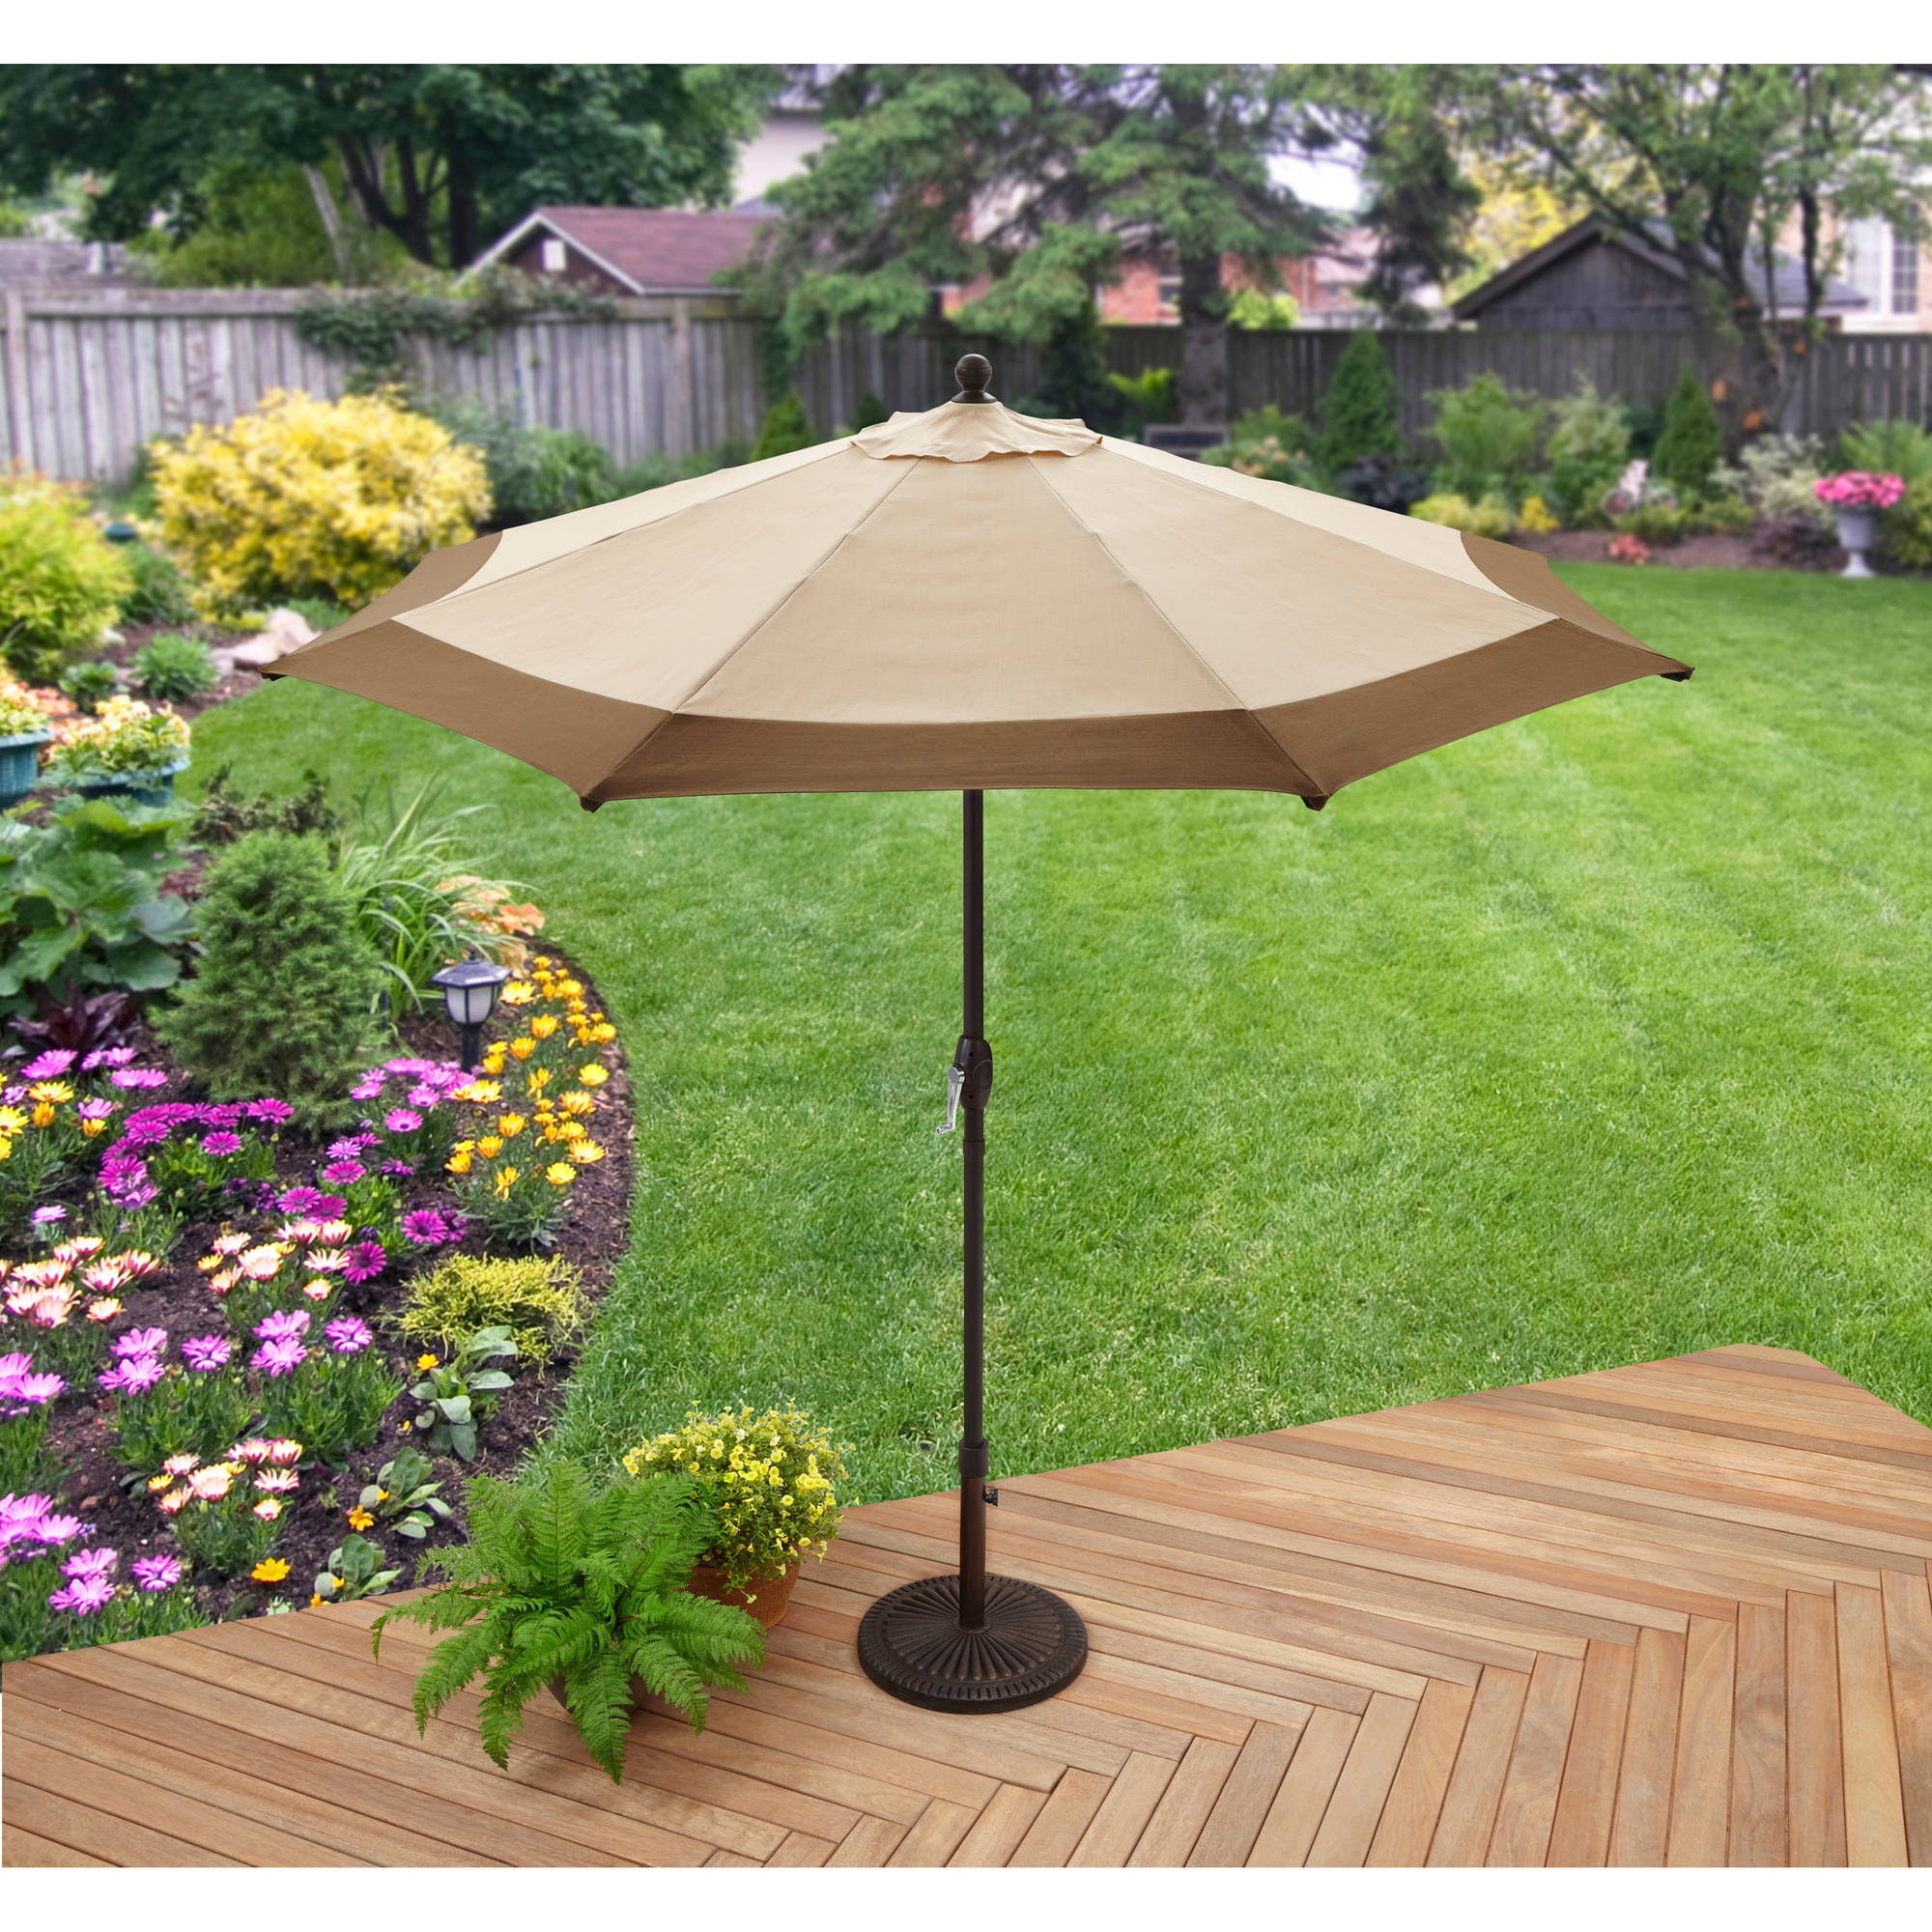 Better Homes and Gardens 9' Market Umbrella, brown border